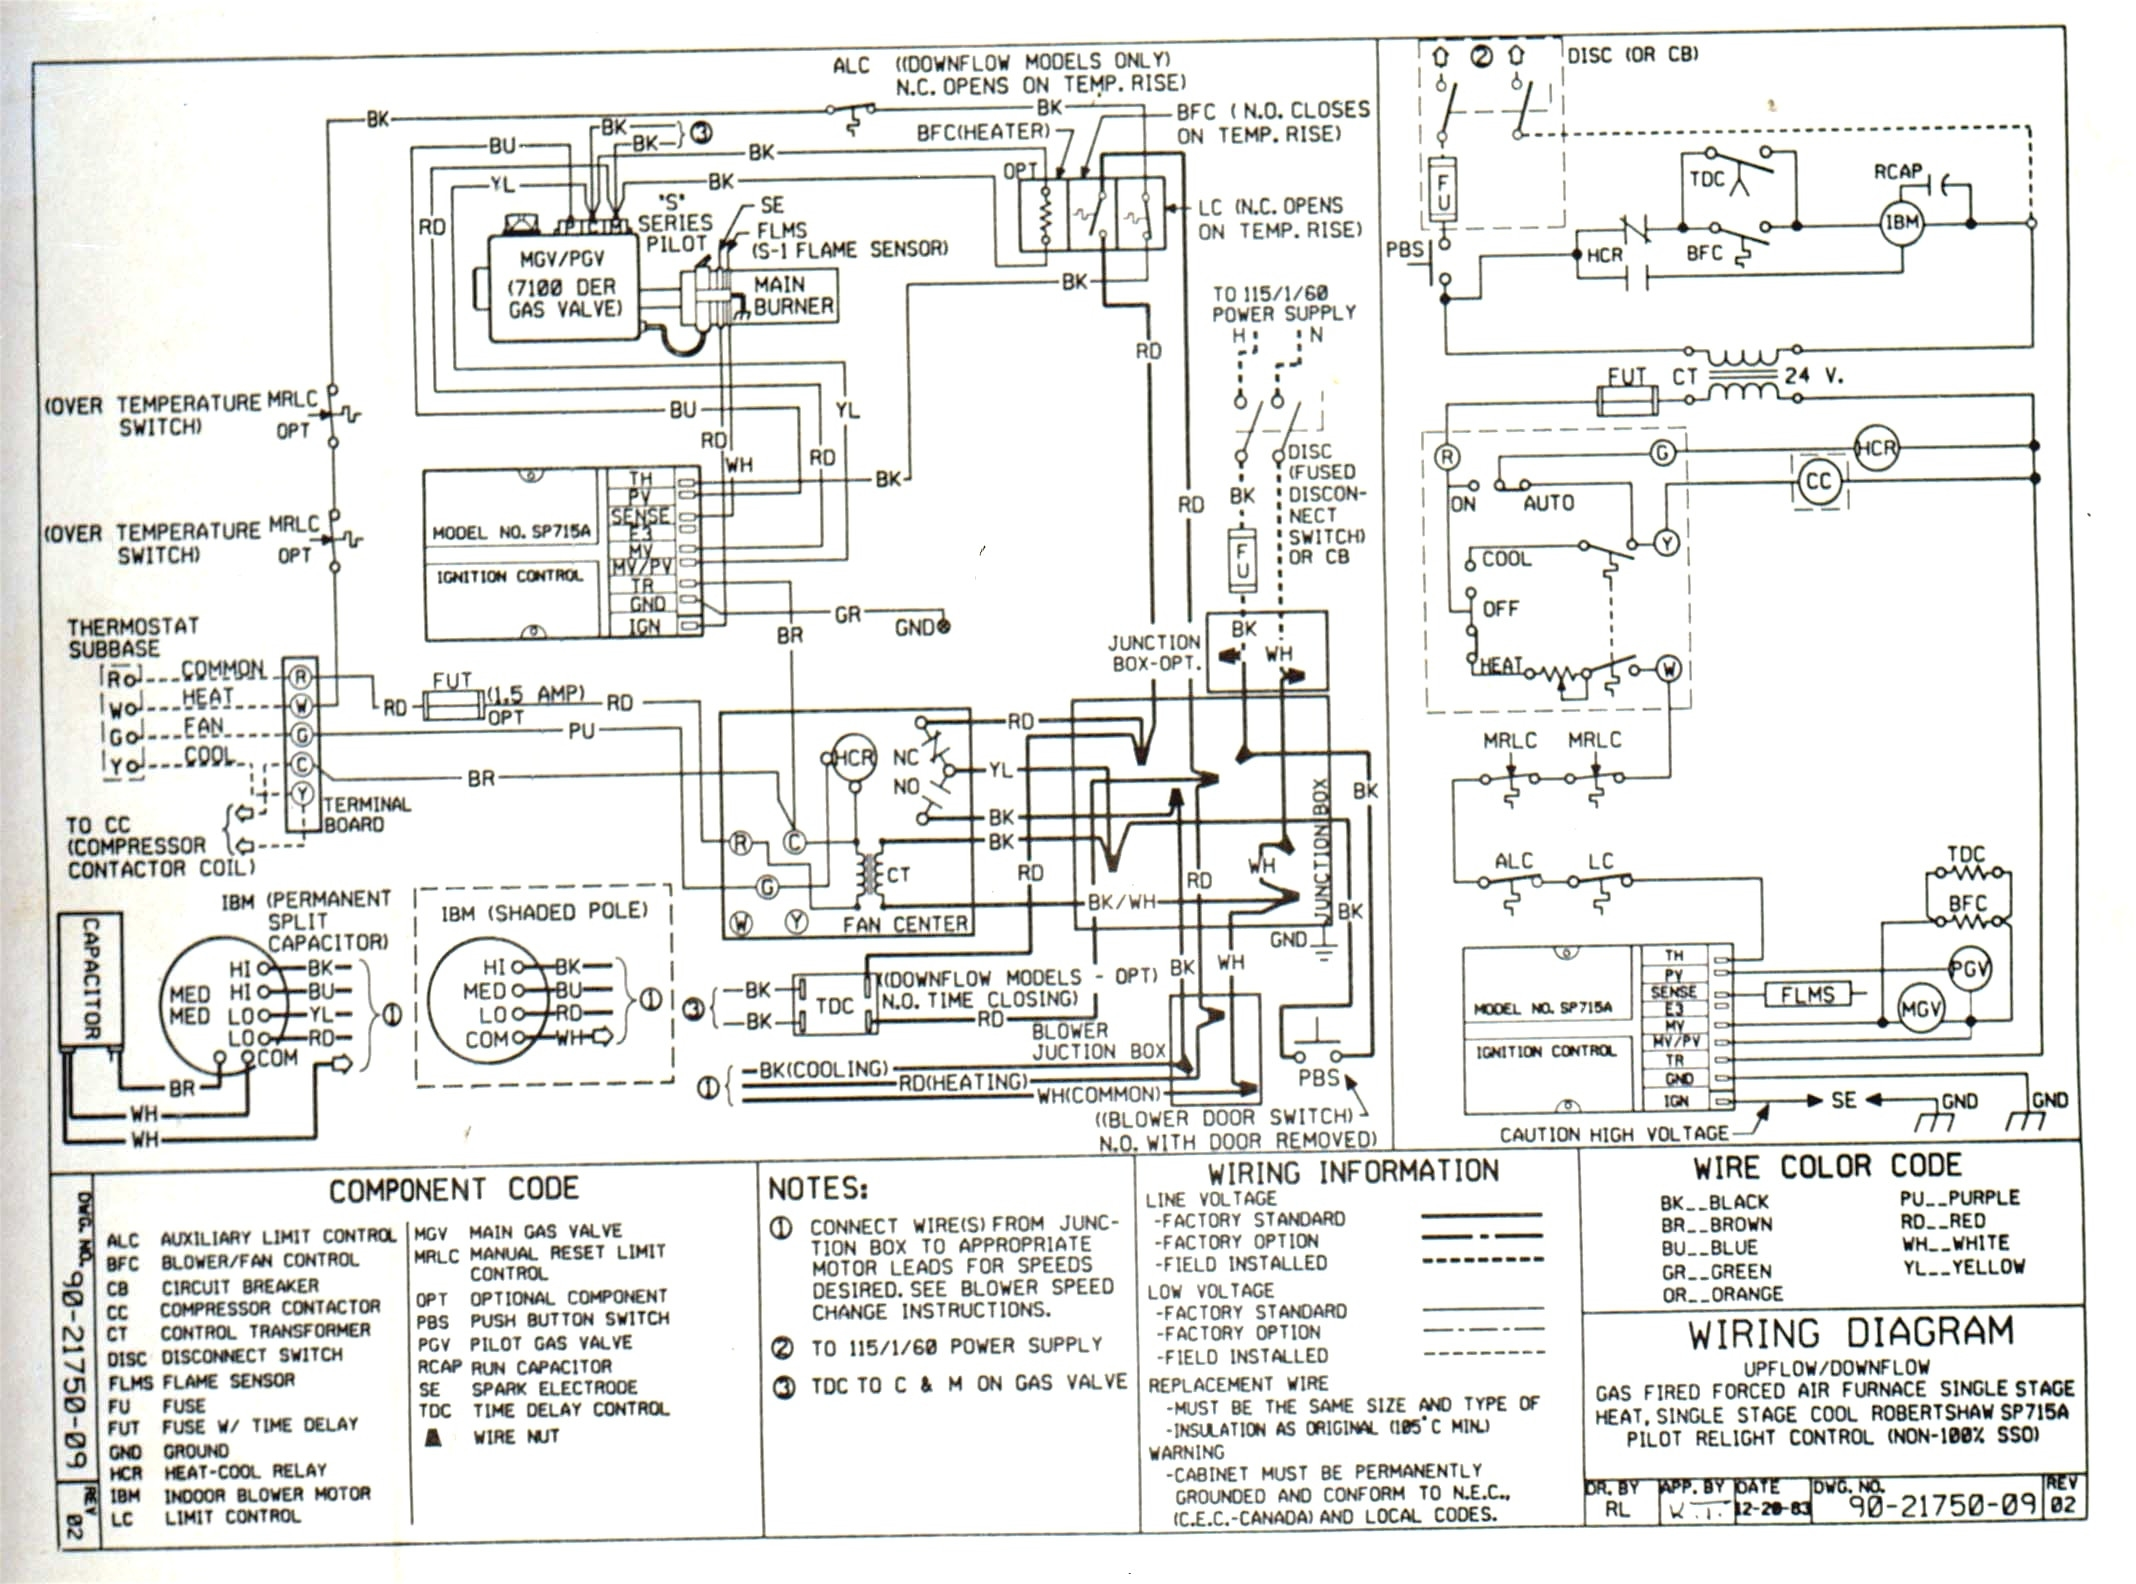 rheem heat pump thermostat wiring diagram Collection-Wiring Diagram for Hot Water Heater thermostat Fresh Heat Pump thermostat Wiring Diagram for Rheem Hot 6-j